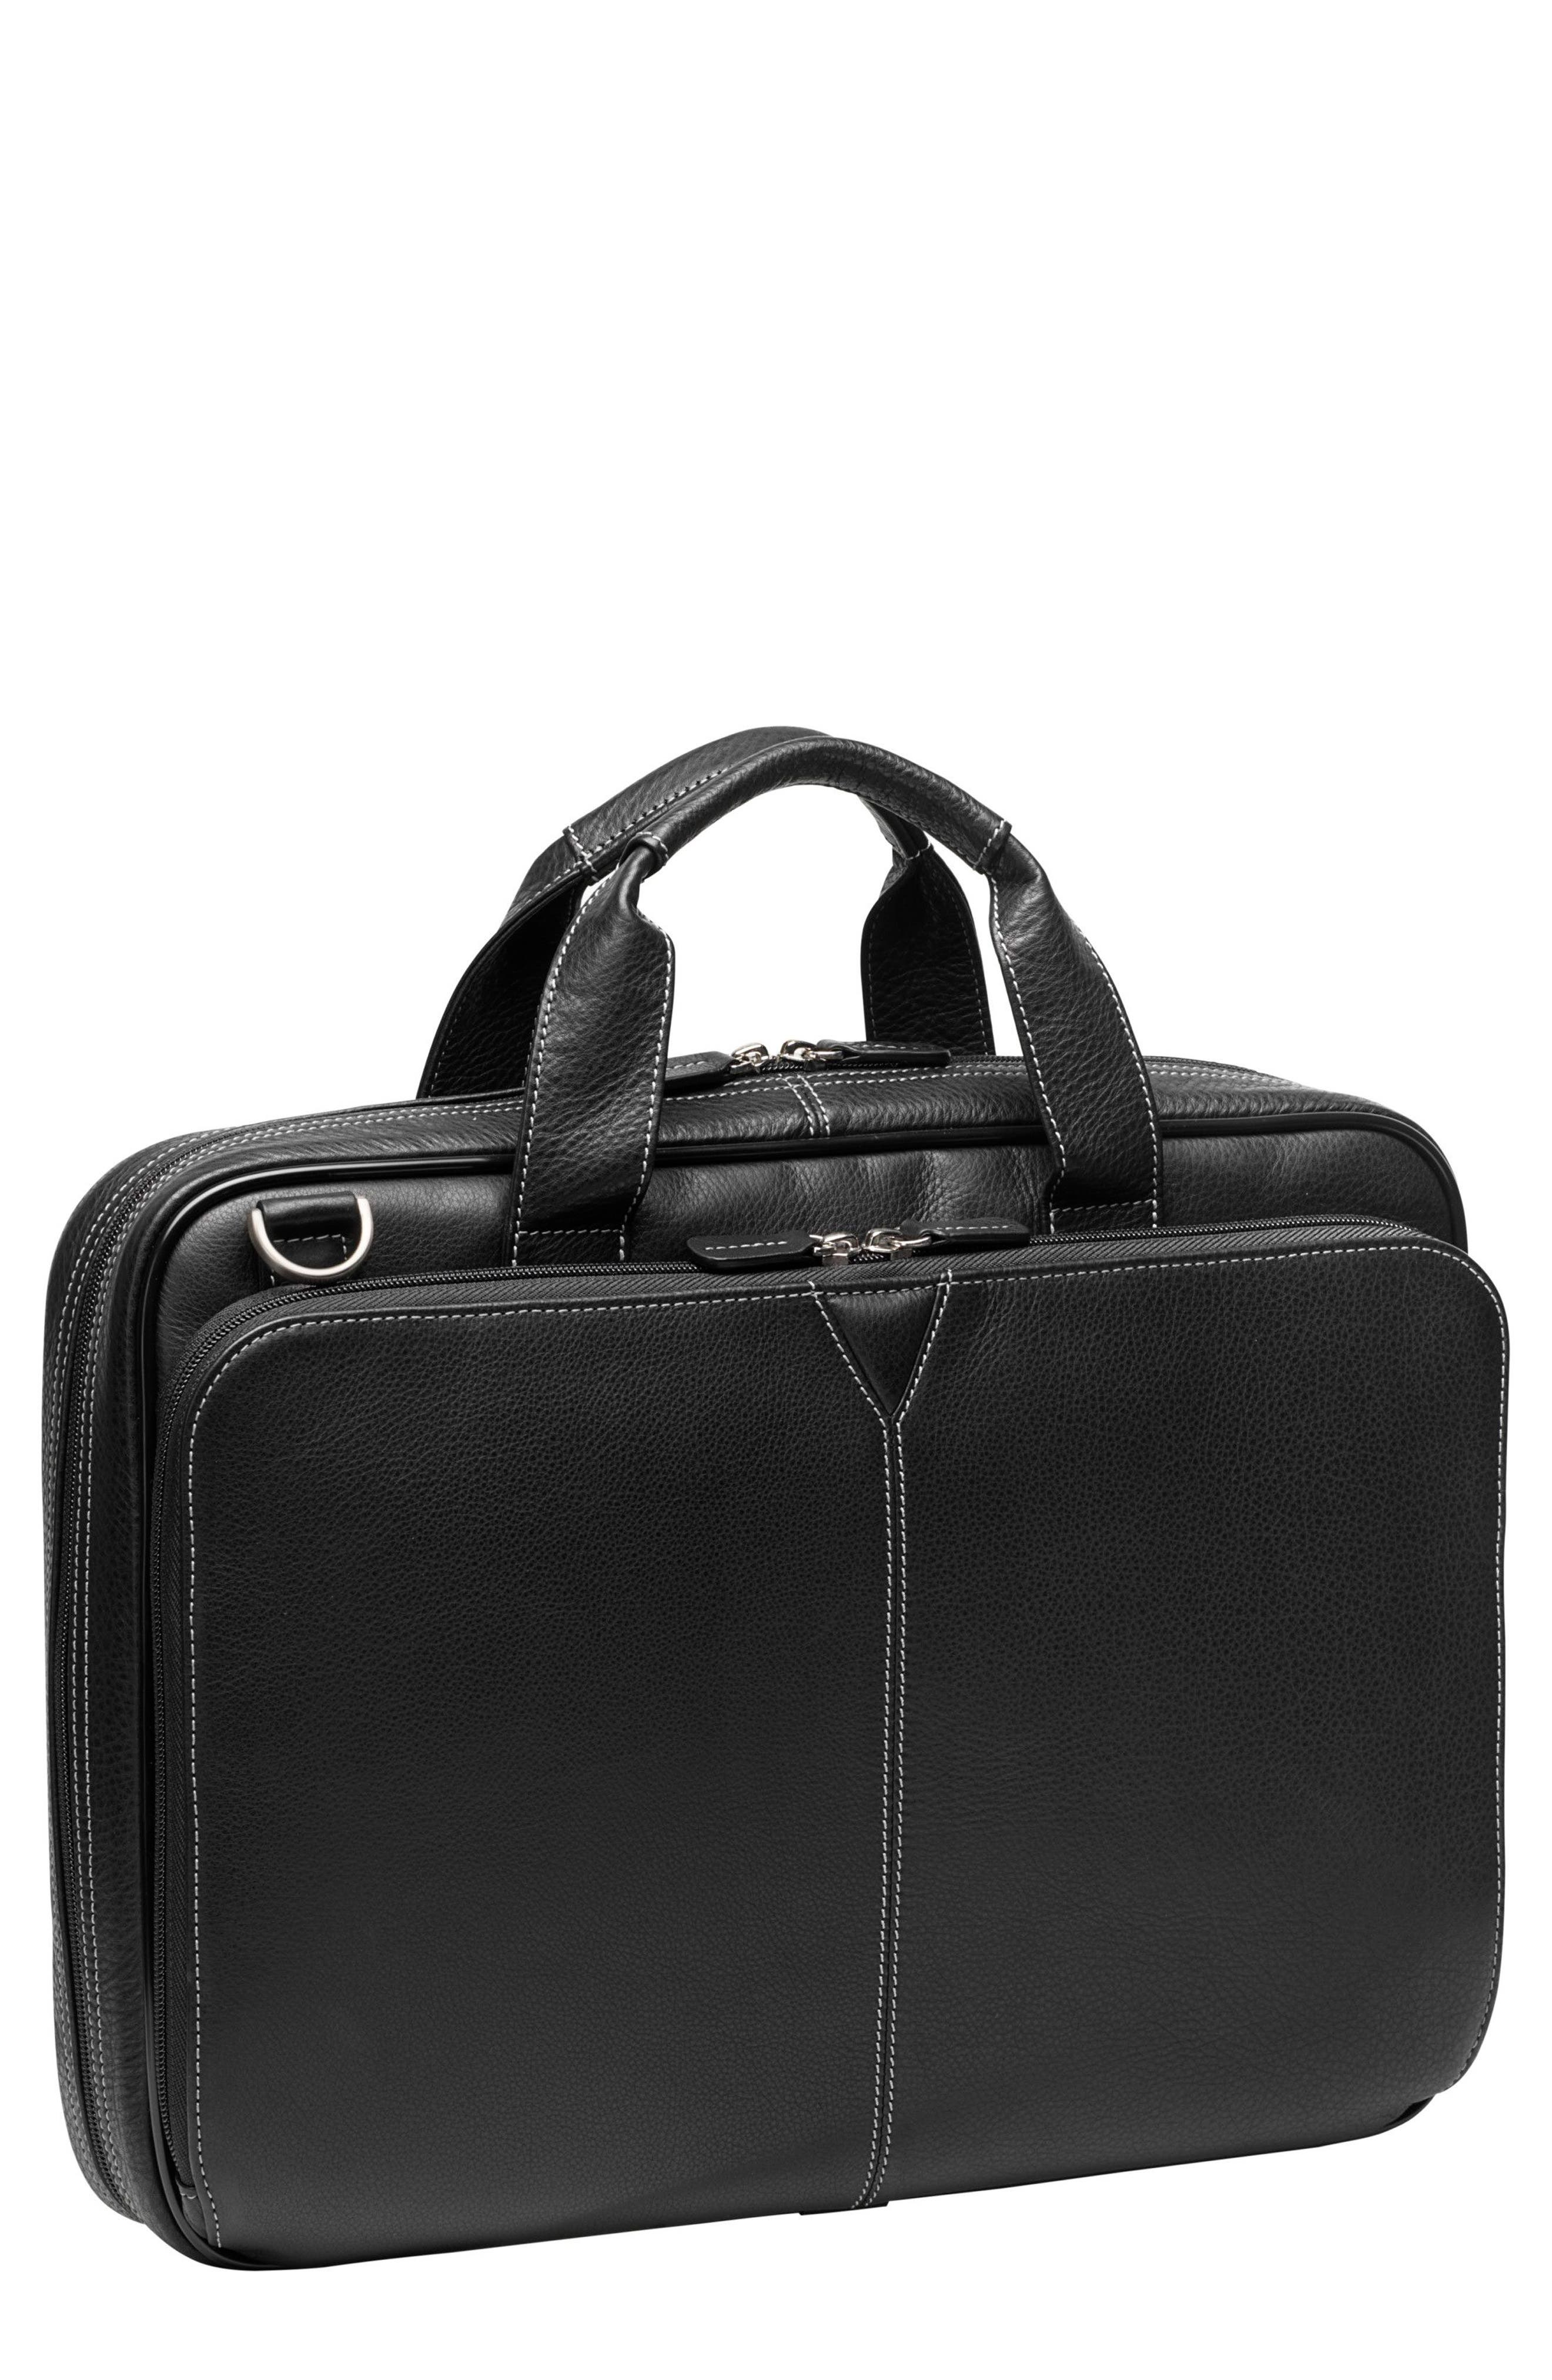 JOHNSTON & MURPHY, Leather Briefcase, Main thumbnail 1, color, BLACK